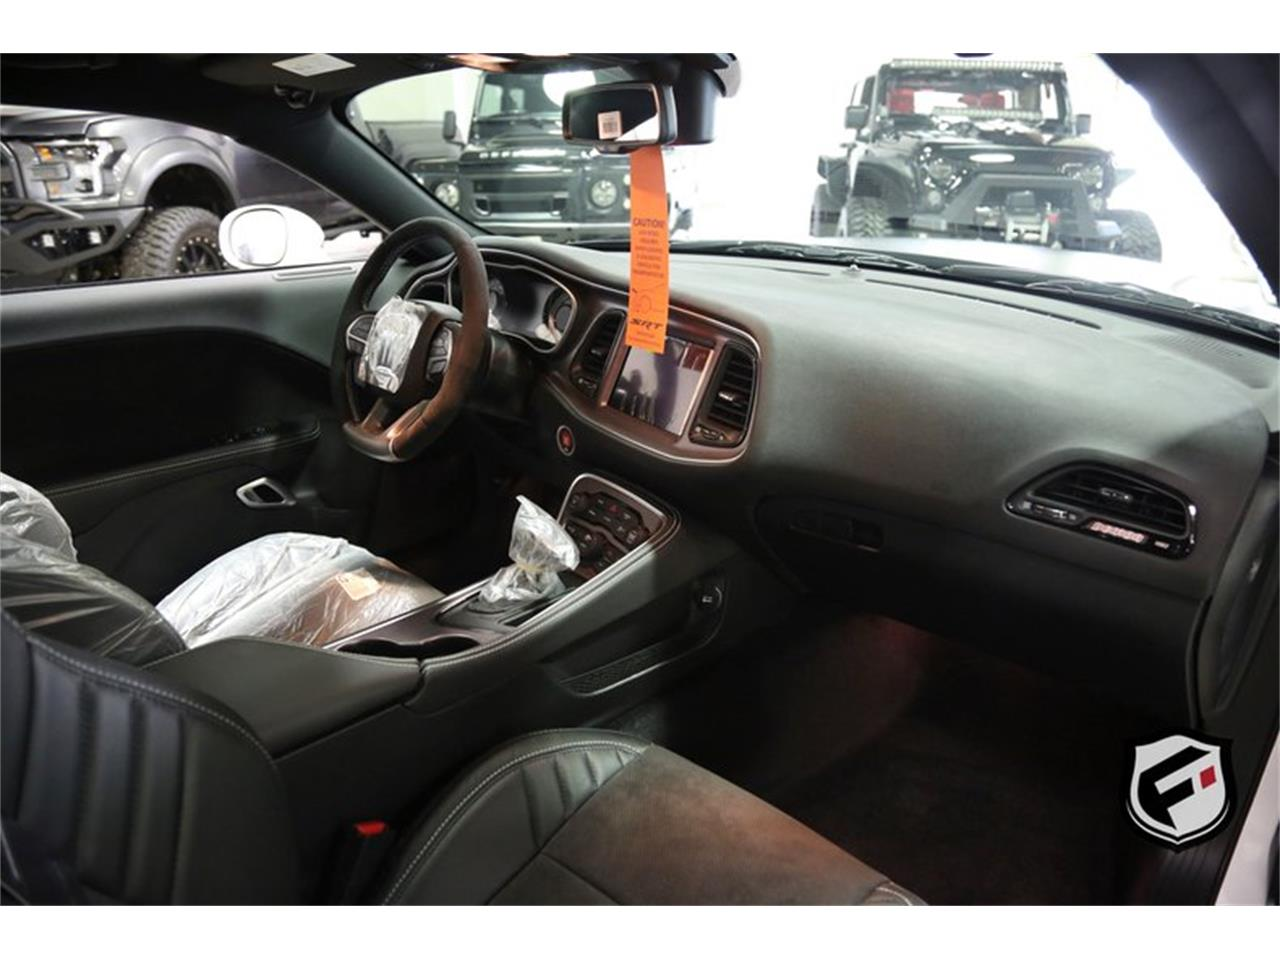 2018 Dodge Challenger for sale in Chatsworth, CA – photo 22